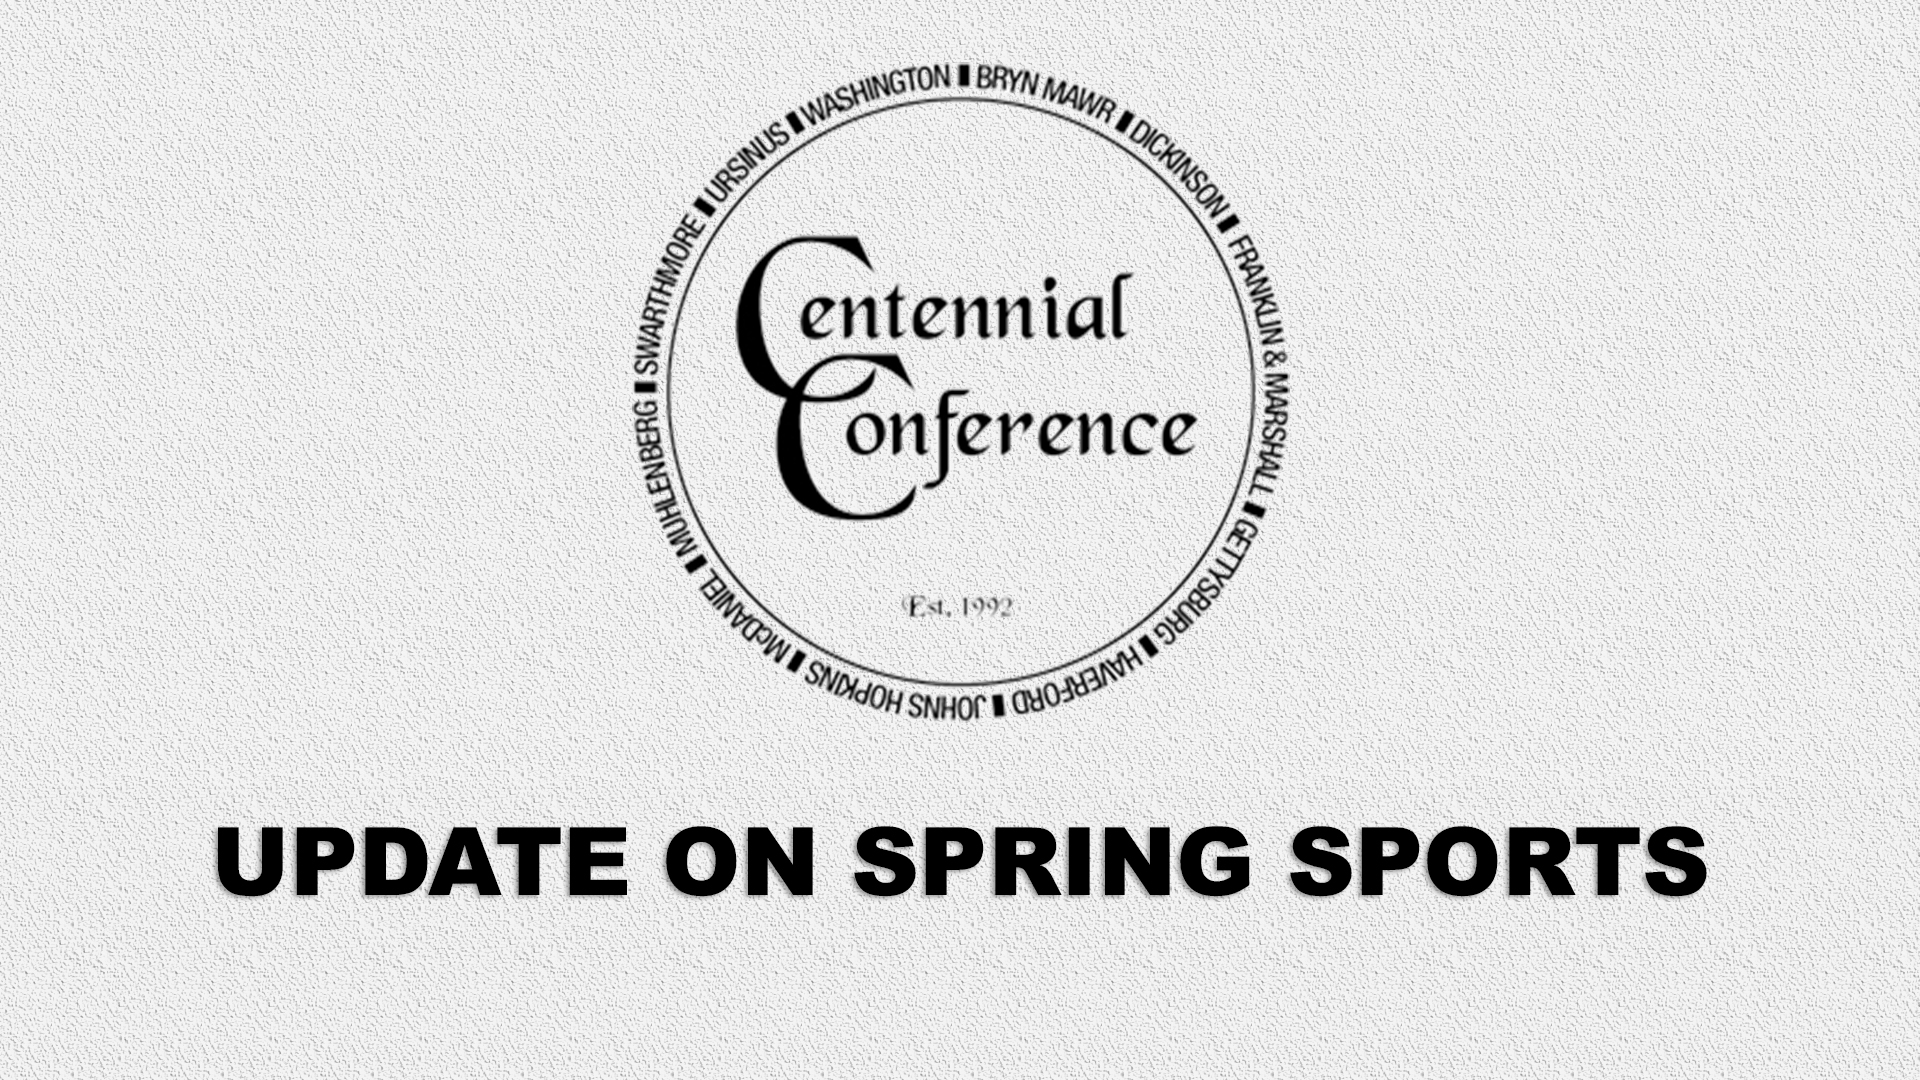 Centennial Conference Update on Spring Sports